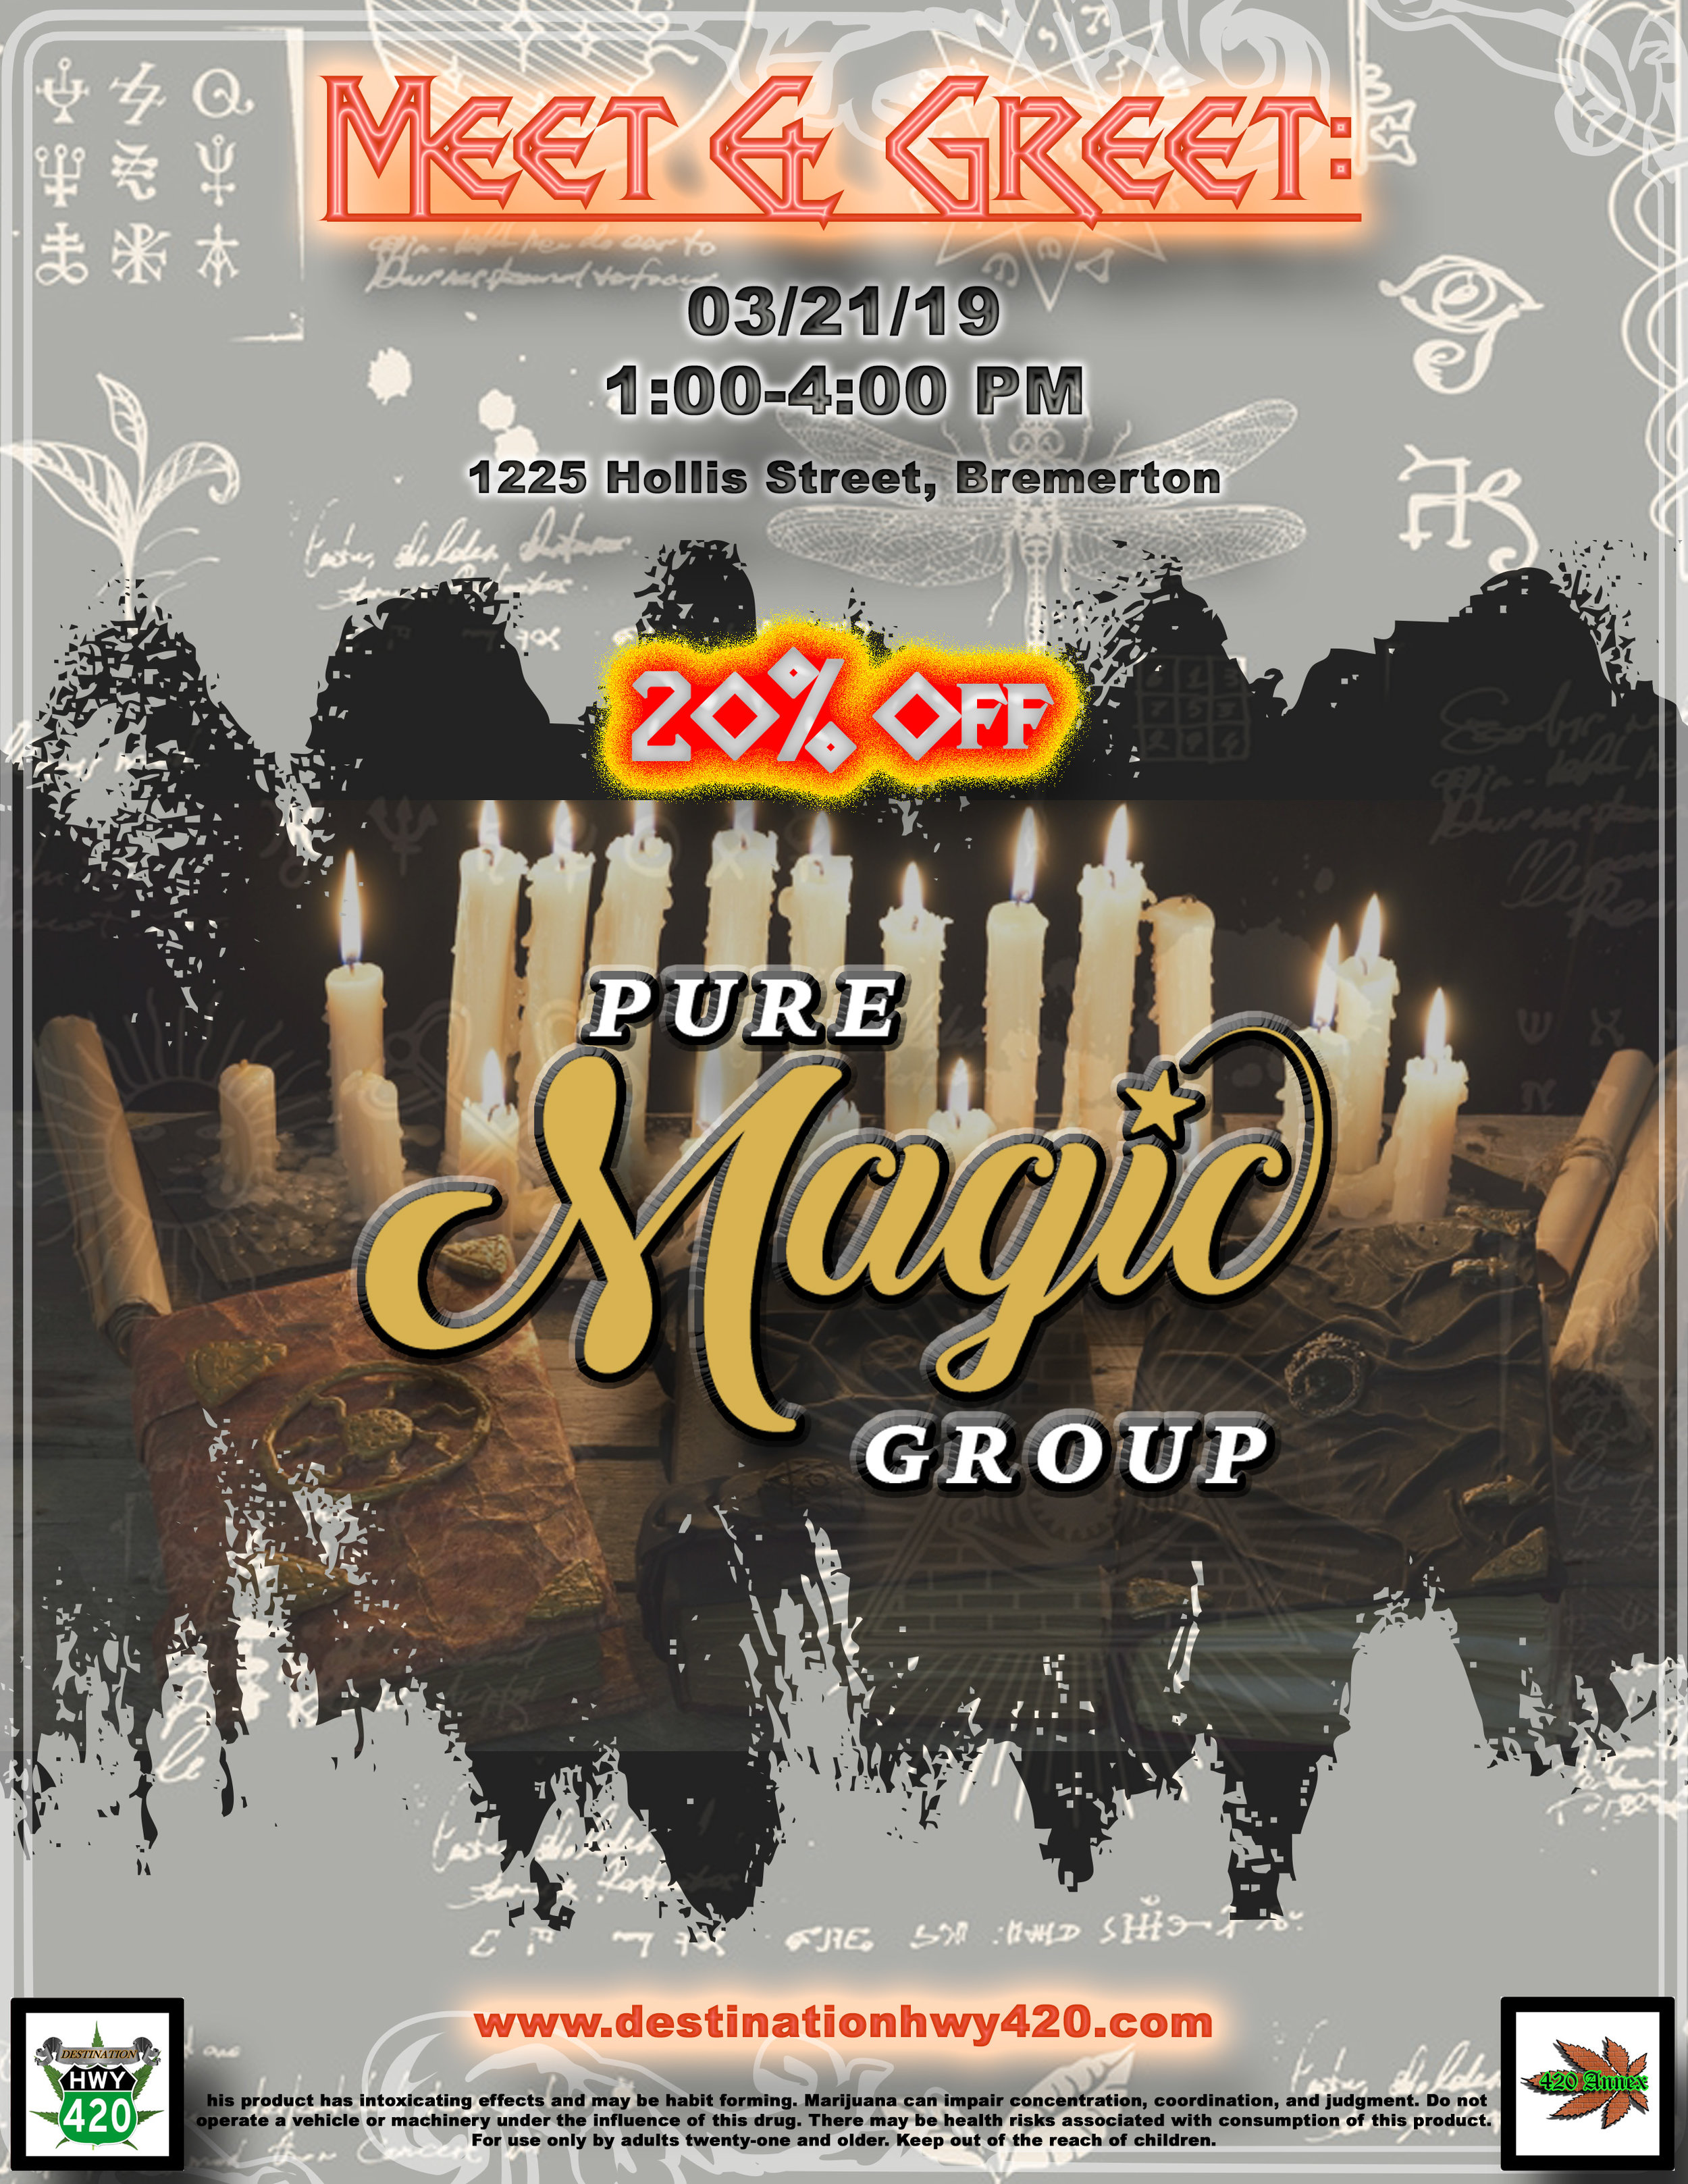 Pure Magic Group is a Tier 2 marijuana producer/processor located in Rochester, WA. Pure Magic Group produces some excellent concentrates such as their LSD Live Resin and Skunk #1 Live Resin. Pure Magic Group also produces vape cartridges with a variety of cannabis strains such as Apple Jacks, Strawberry Lemonade, and Lime OG. Pure Magic marijuana products are available at Destination HWY 420, in East Bremerton, WA.